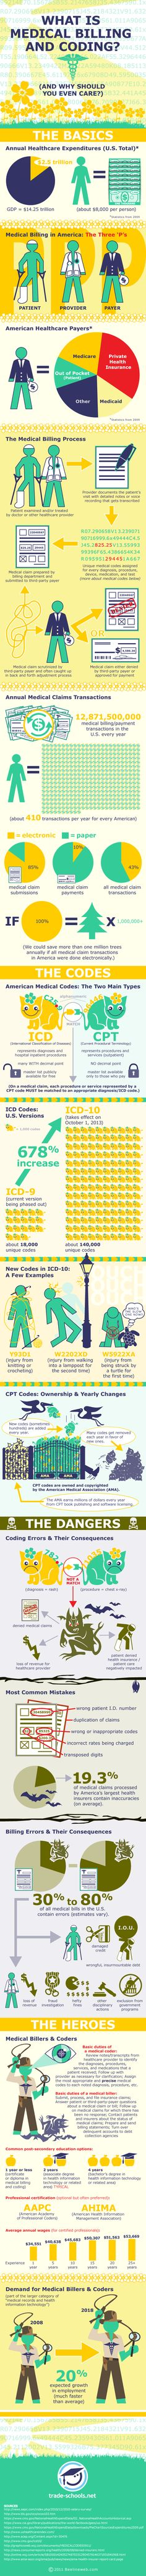 What is medical billing and coding? Check out this infographic to learn why medical coders and billers should be admired as heroes in the medical field. Medical Coder, Medical Billing And Coding, Medical Careers, Medical Terminology, Medical Assistant, Medical Coding Course, Health Information Management, Manager Humor, Lab